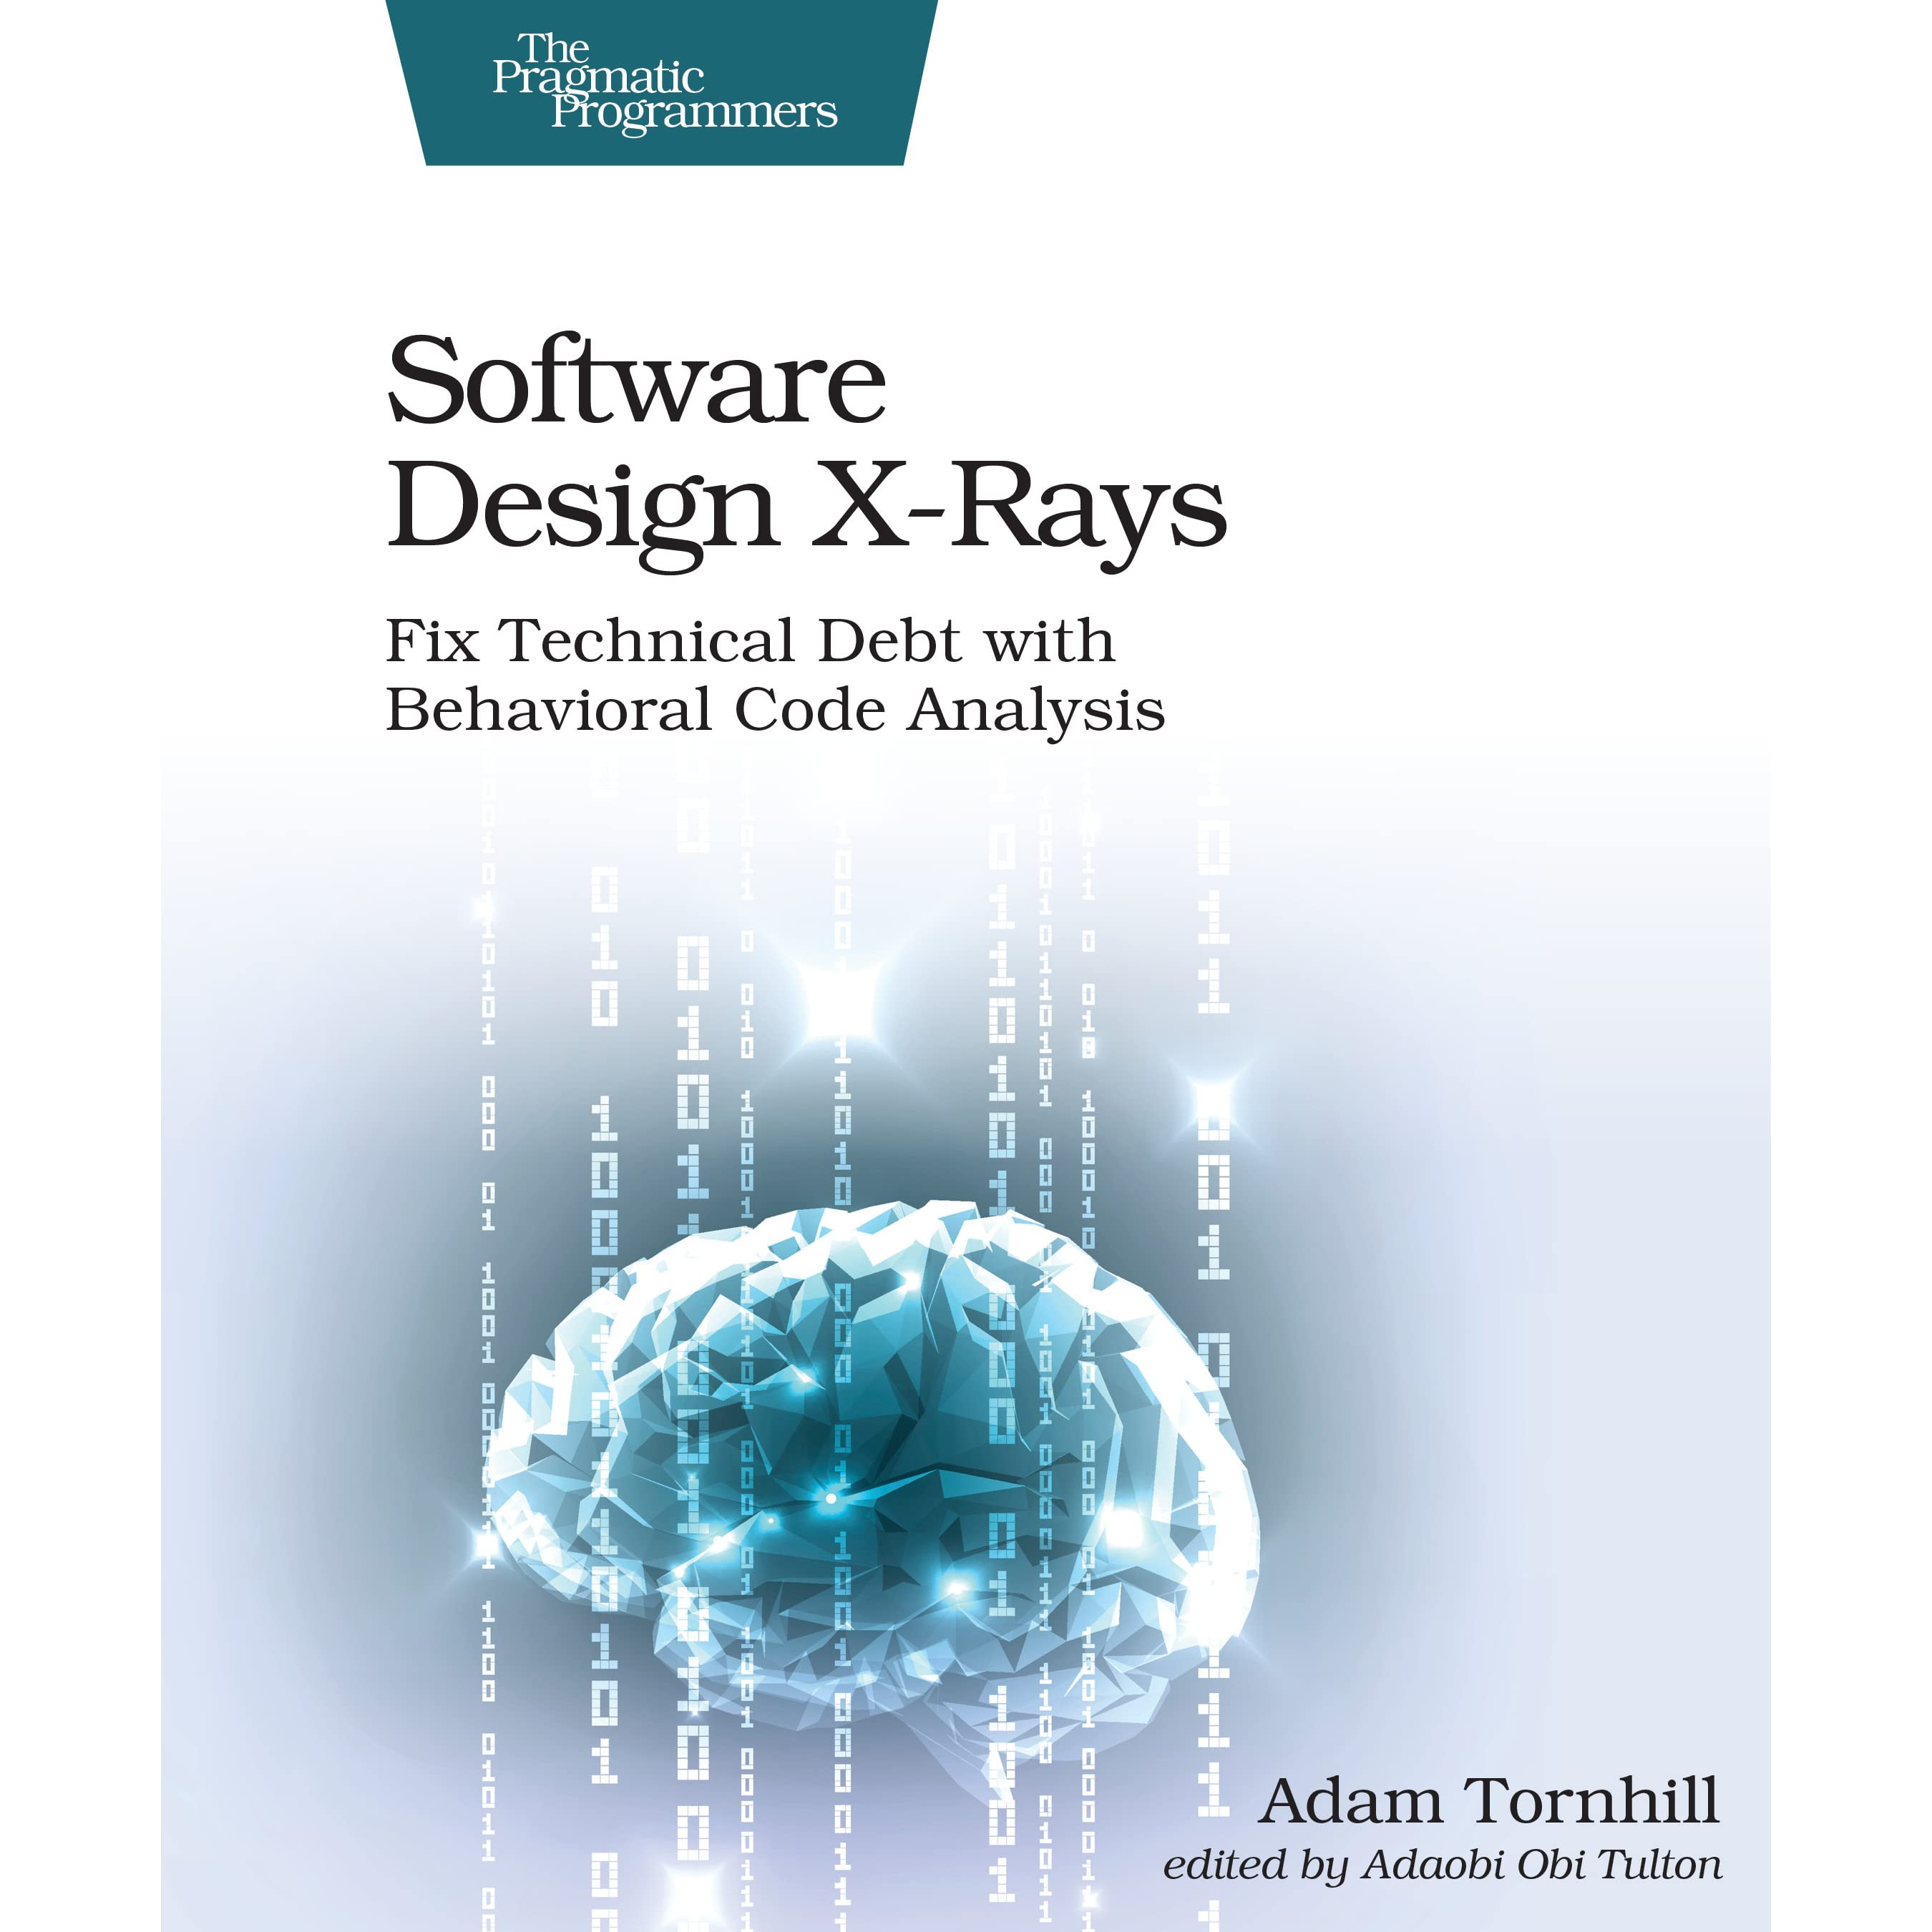 essays software design This article overviews design strategies for agile software development teams these strategies are critical for scaling agile software development to meet the real-world needs of modern it organizations.